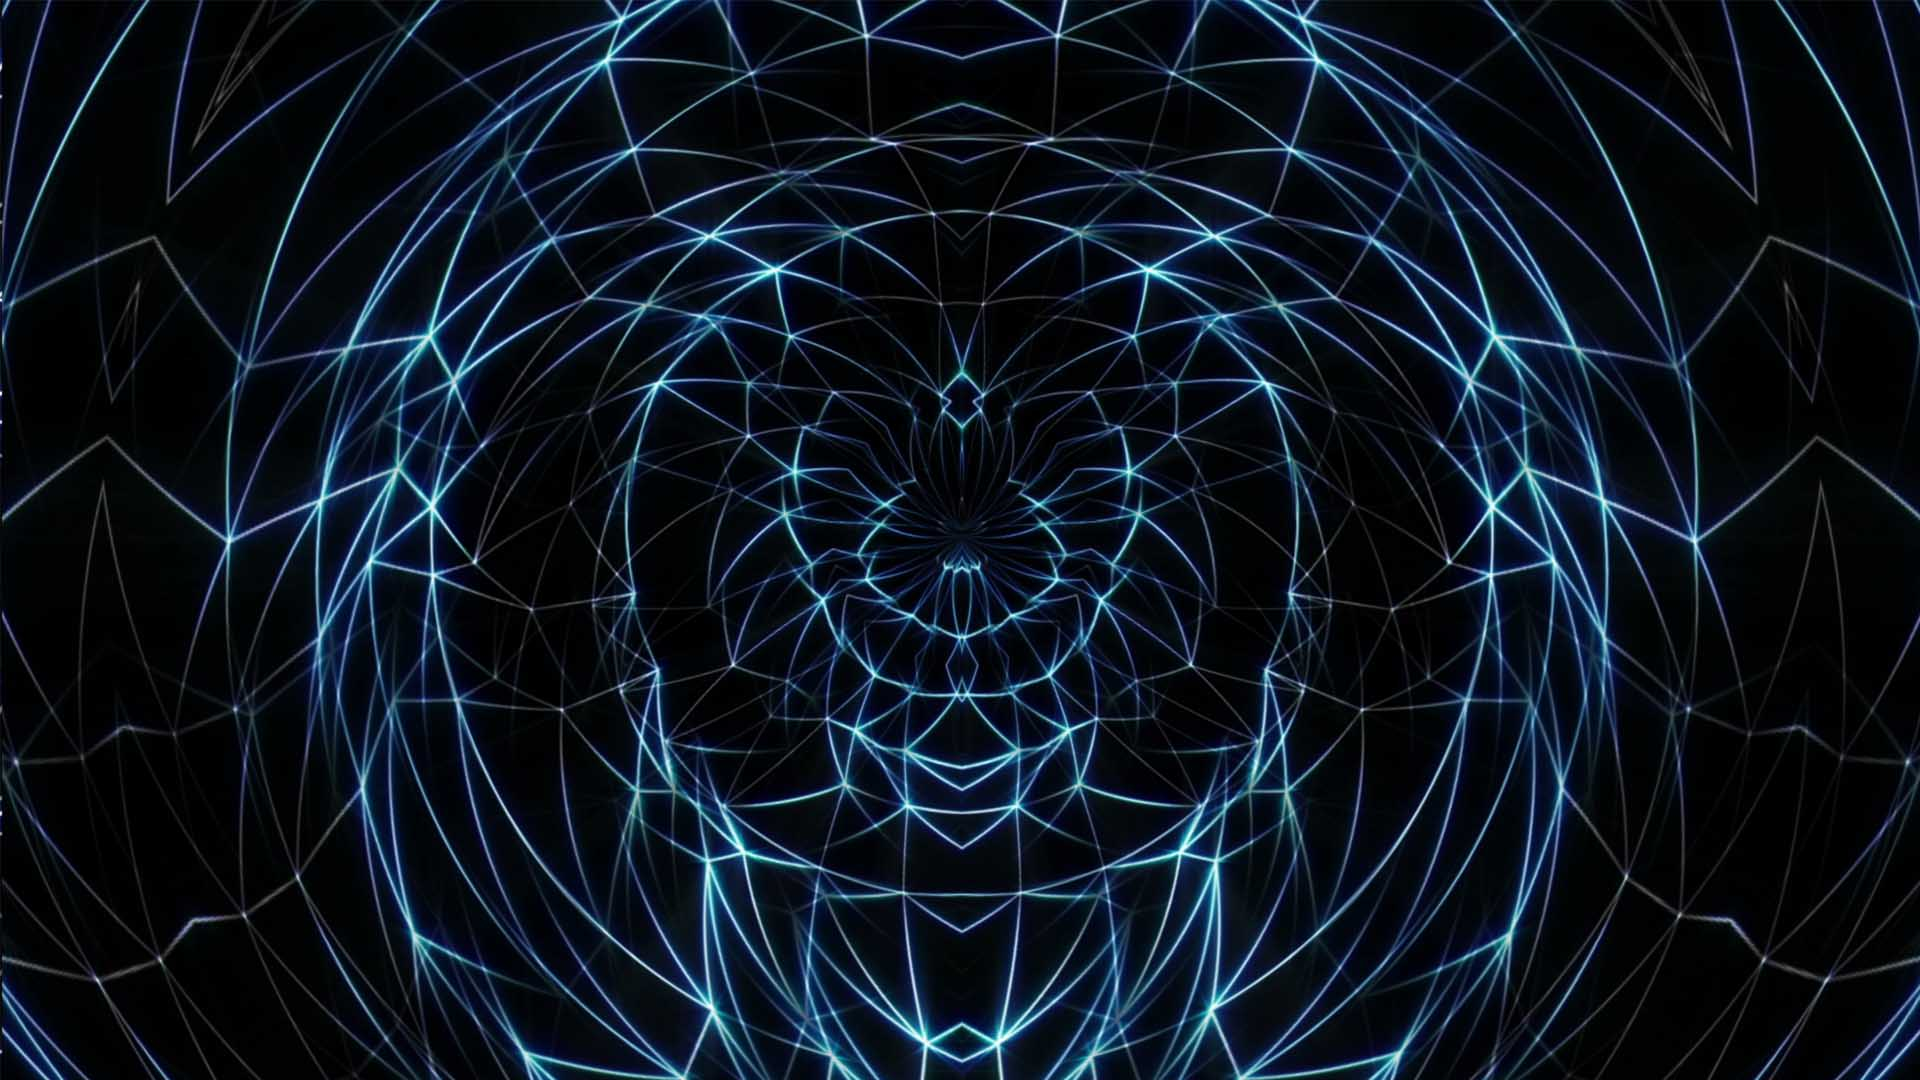 Blue lines Vj loop video wallpaper polygonal background